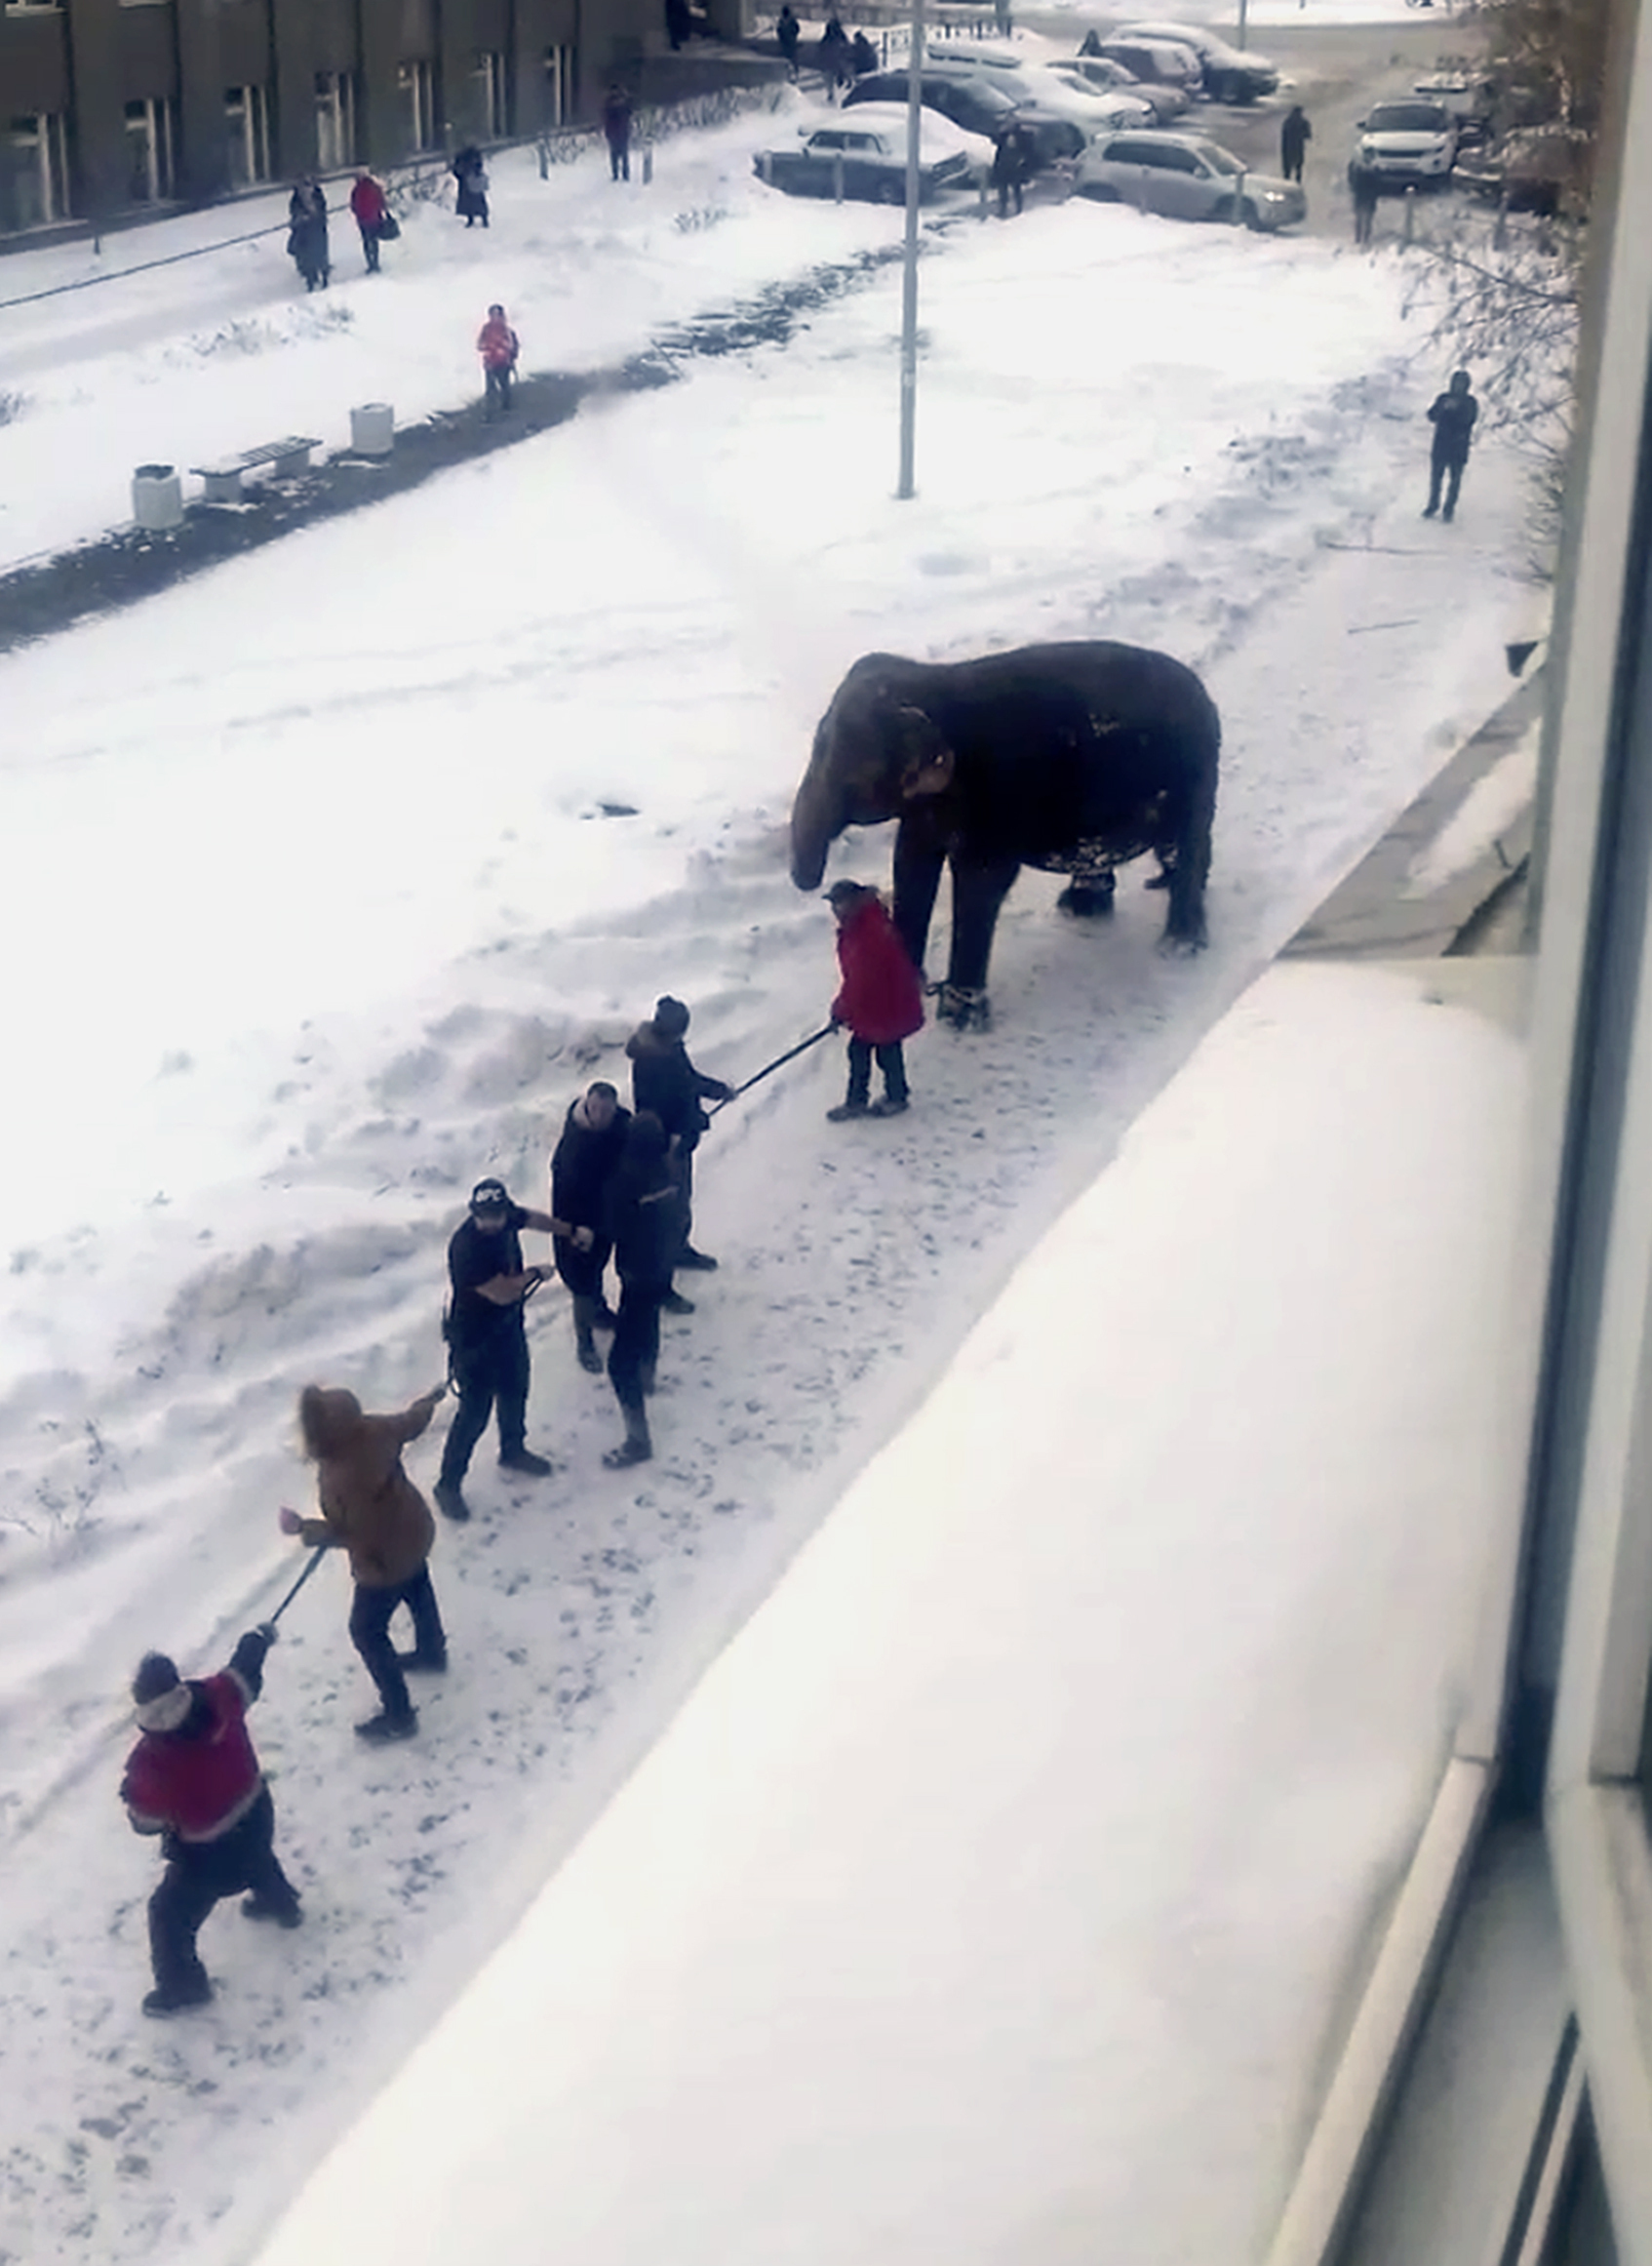 Circus workers pull an elephant in Yekaterinburg, Russia